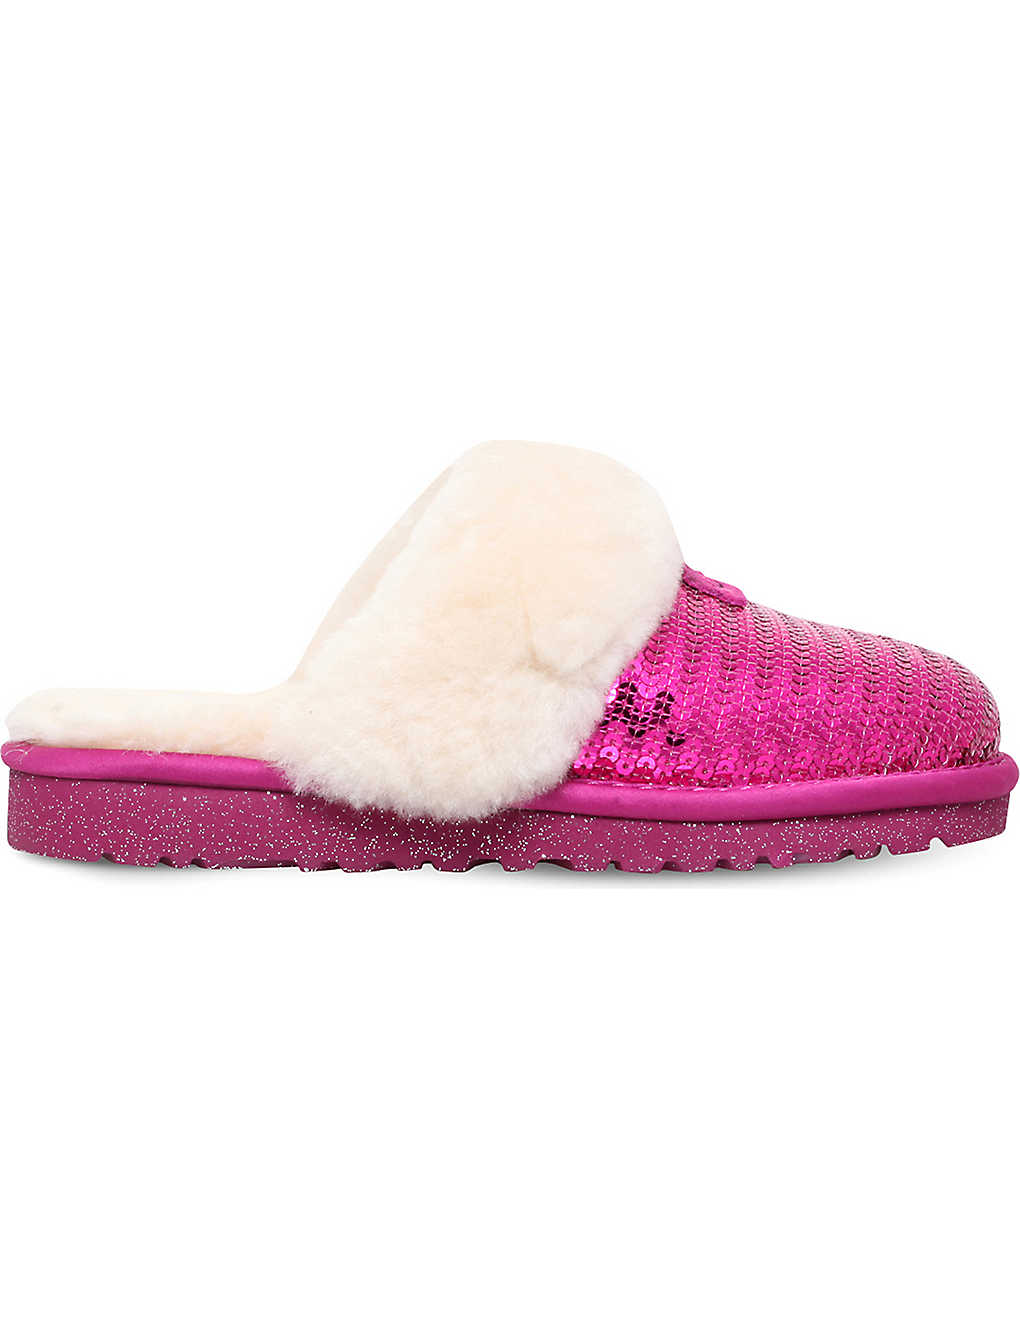 97969e28489 UGG - Dazzle sequin slippers 7-10 years | Selfridges.com